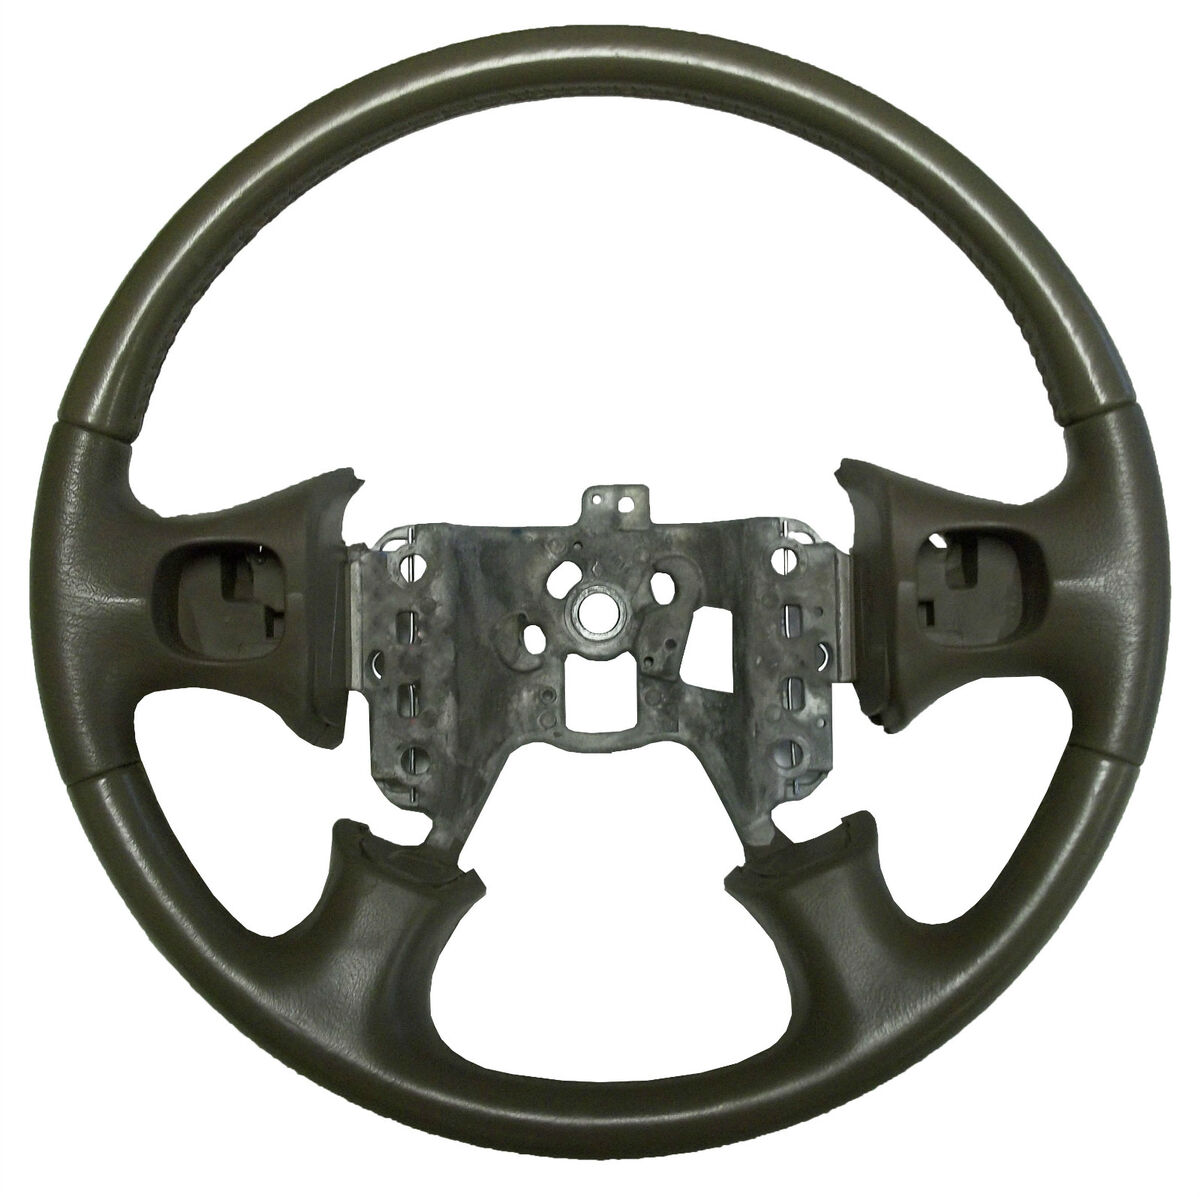 Brand New Genuine Buick Park Avenue Steering Wheel Shale Brown Leather